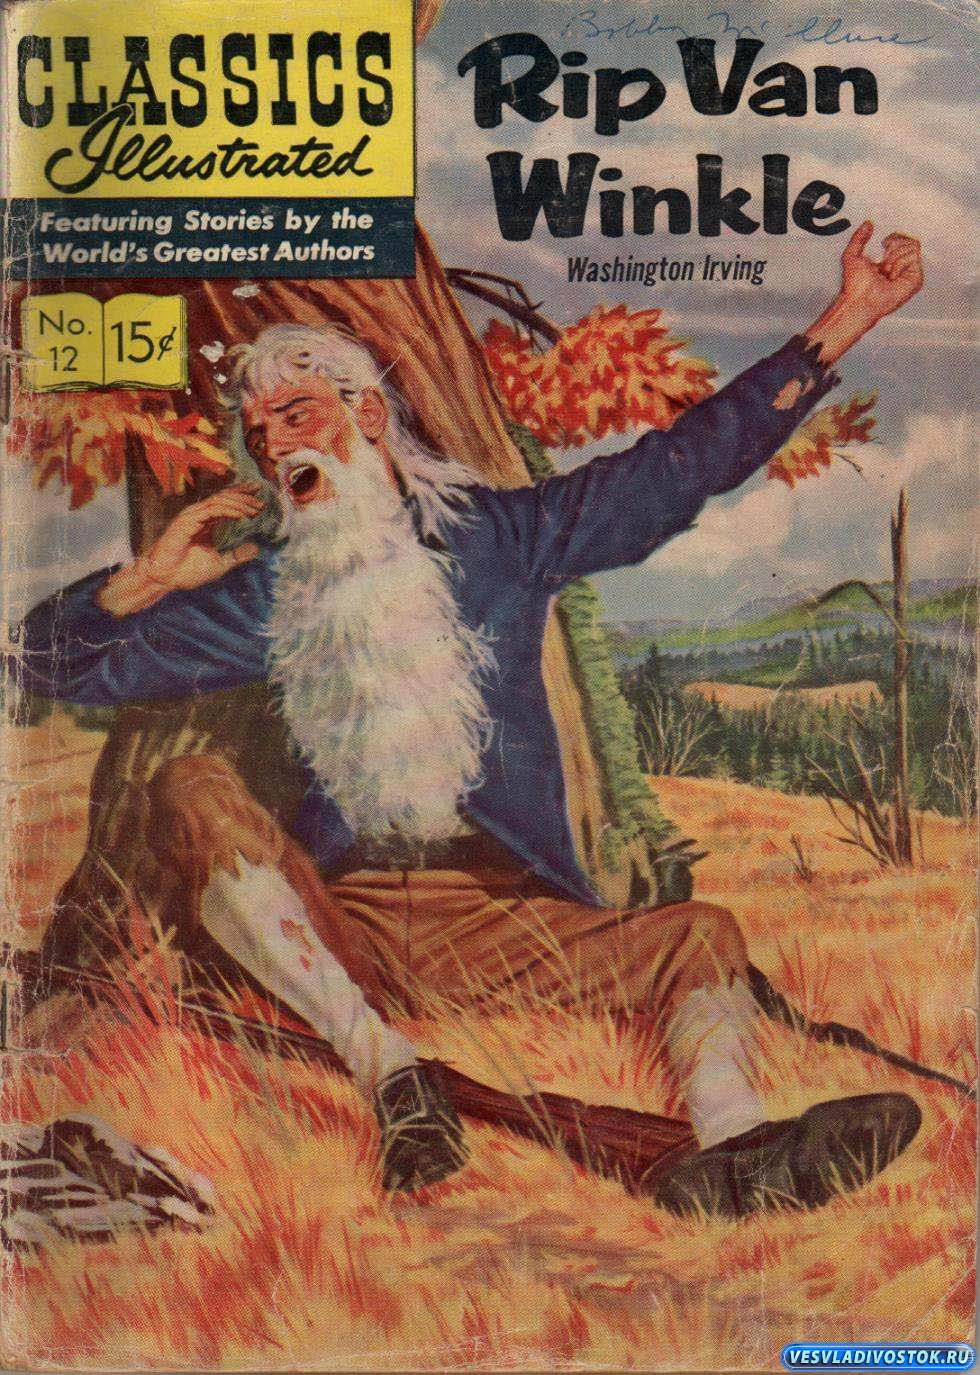 rip van winkle essays Summary of rip van winkle 2 pages 597 words june 2015 saved essays save your essays here so you can locate them quickly.